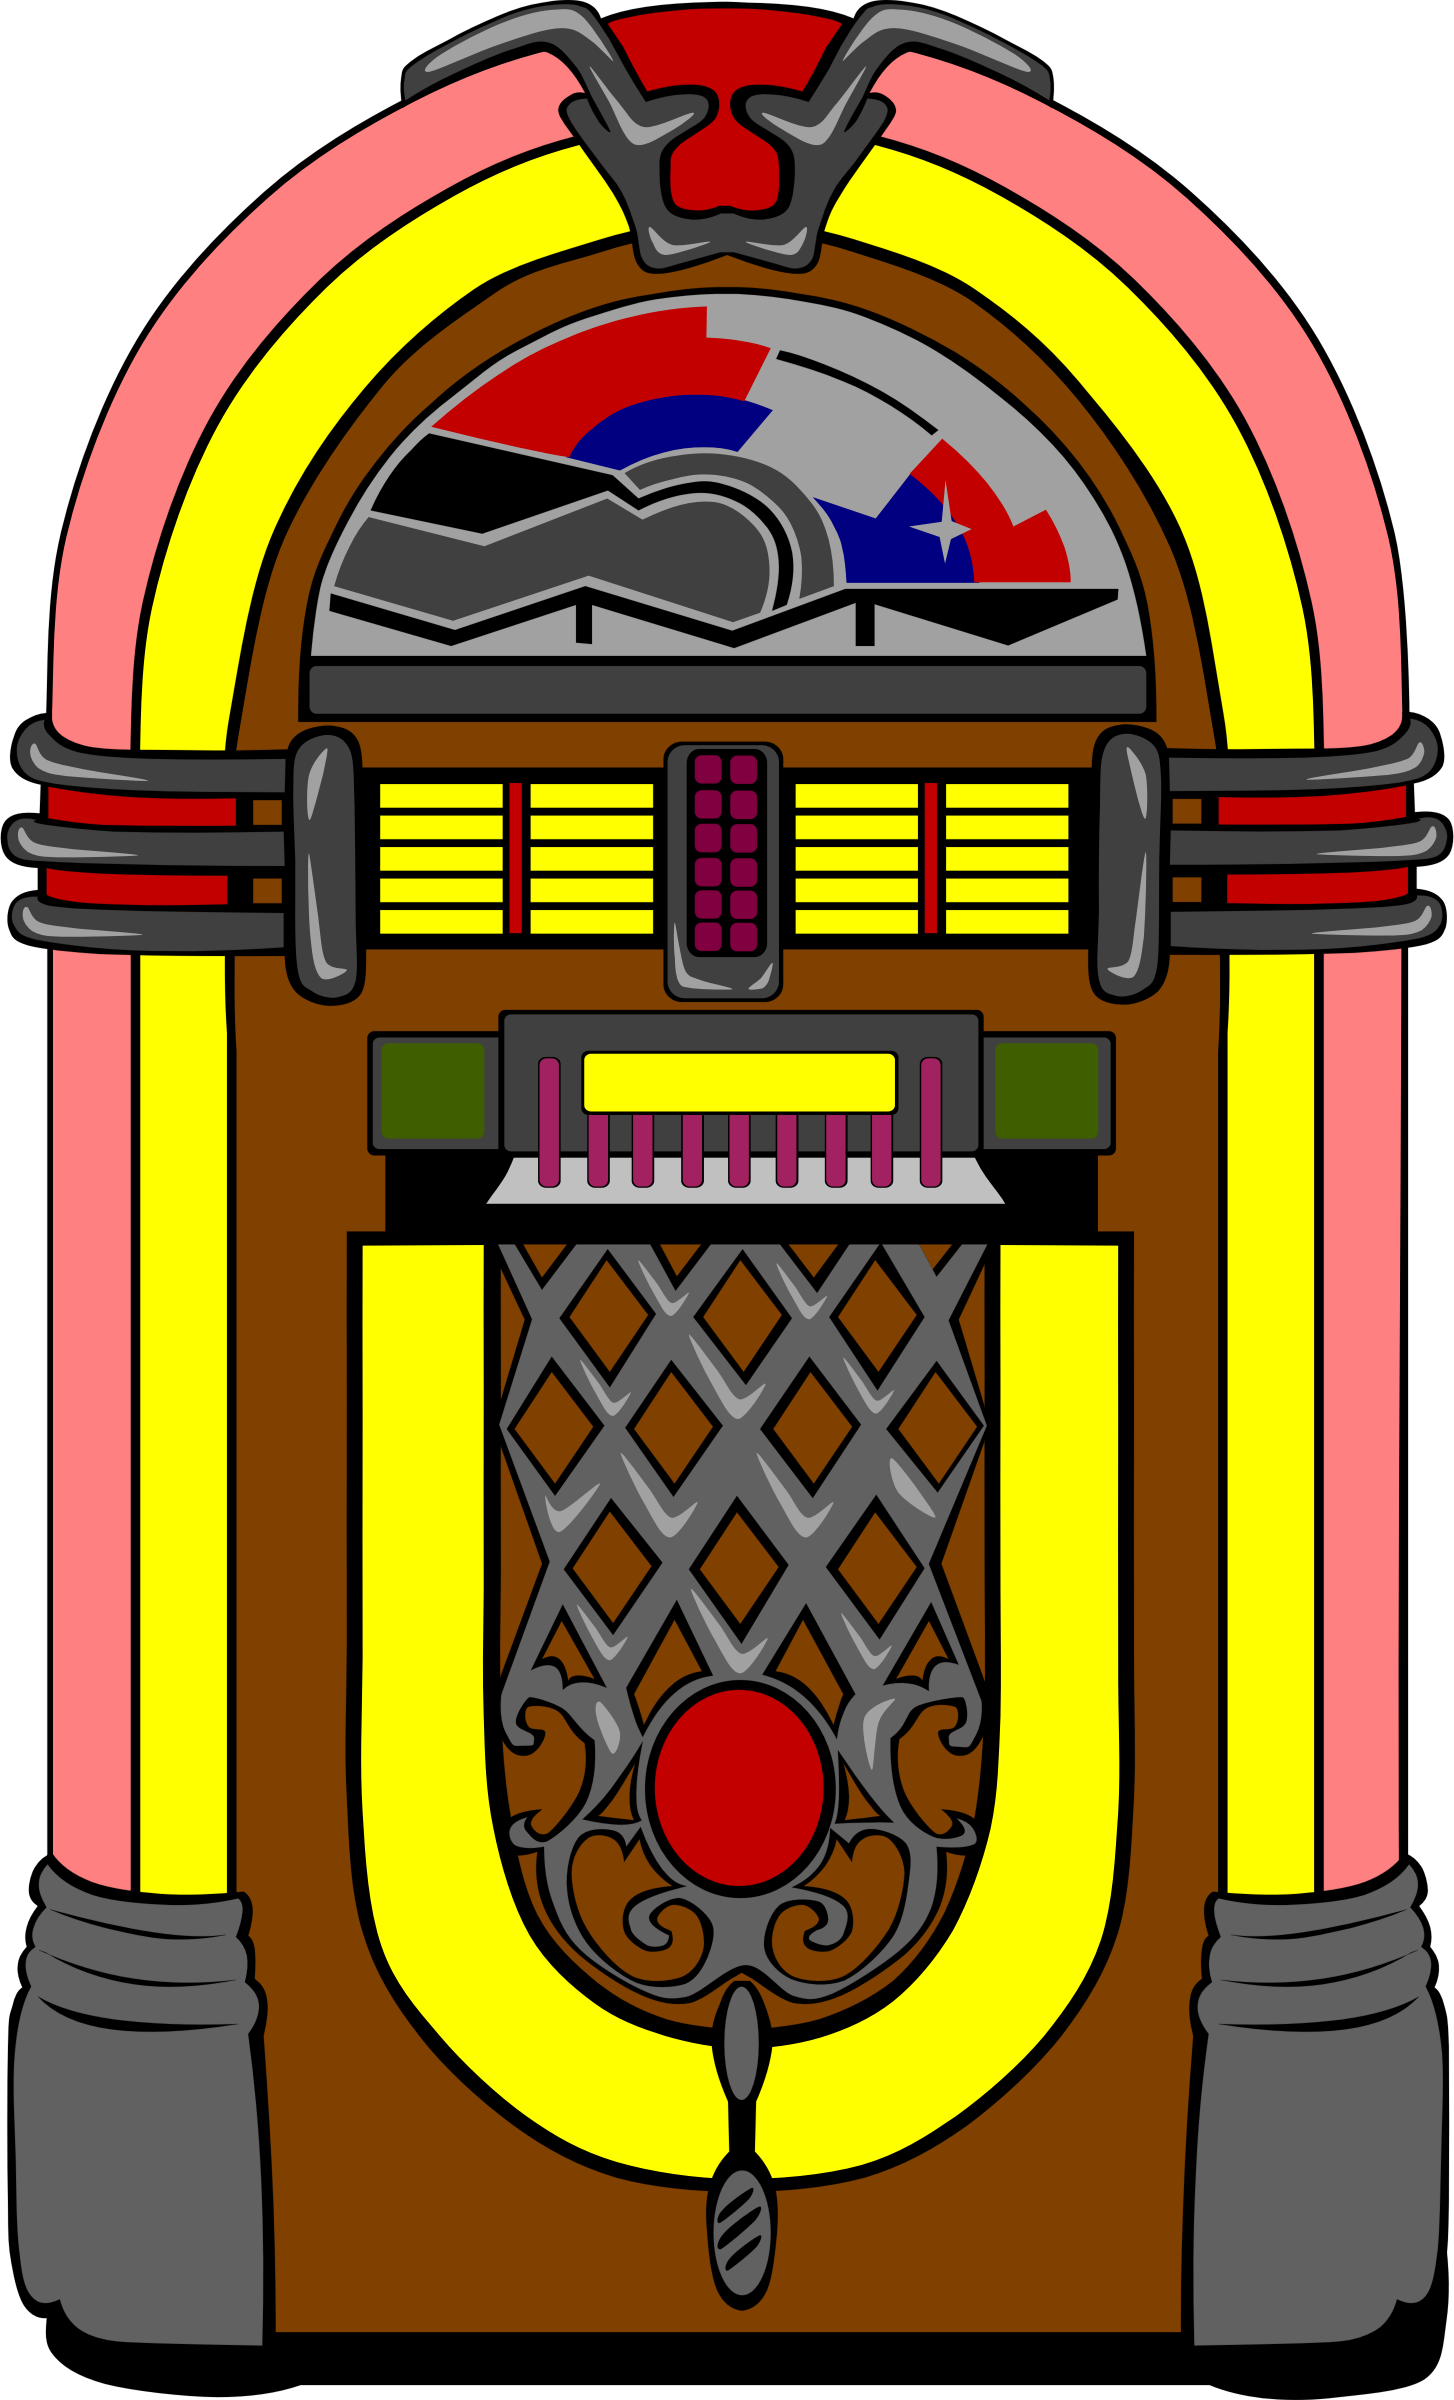 Fifties Jukebox by Gerald_G